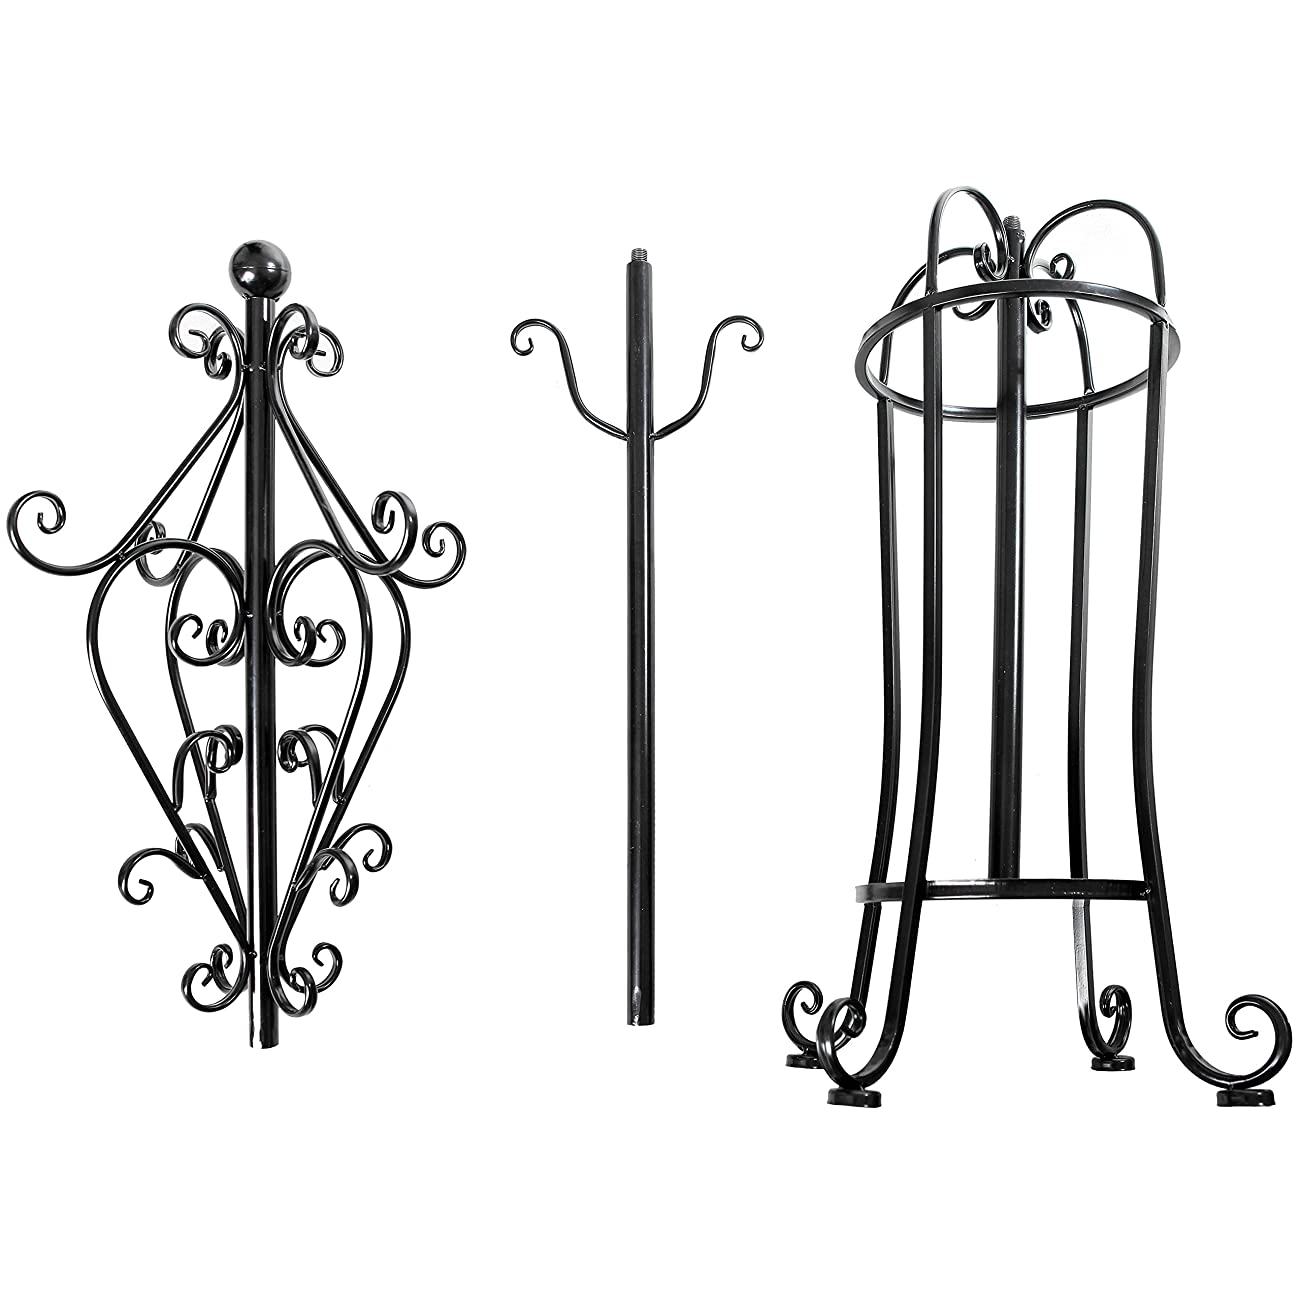 6' Freestanding Vintage Victorian Black Metal Scrollwork Coat Rack / Hat Hook Stand with Umbrella Holder 3